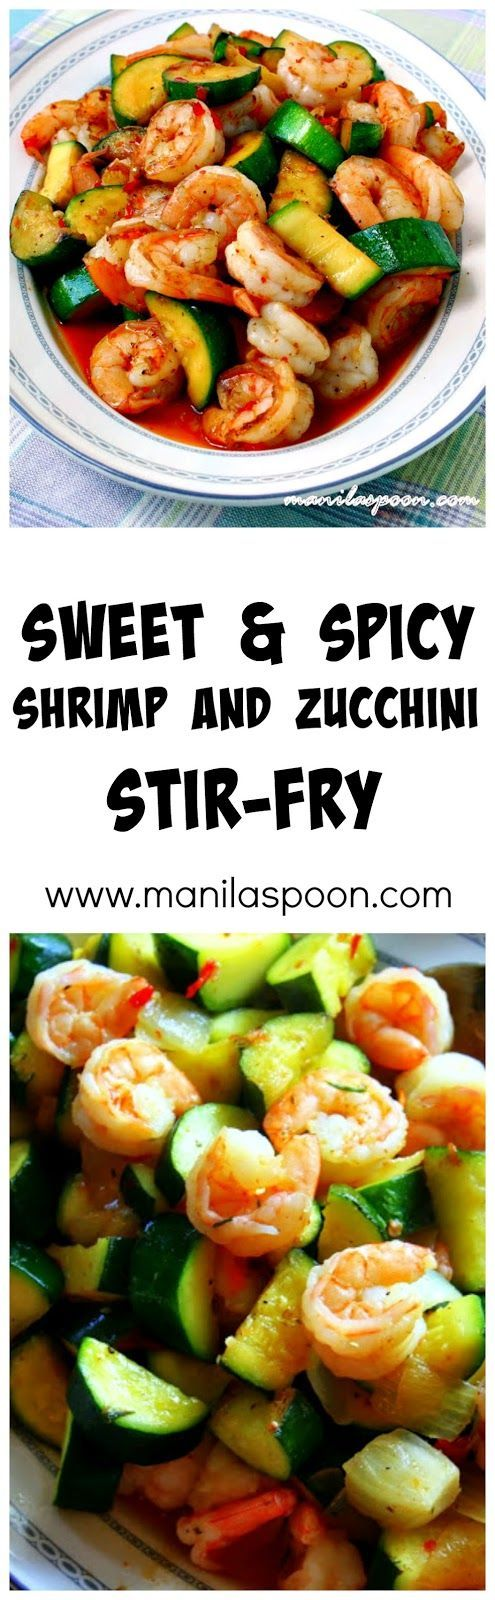 Love shrimps? Only 5 minutes to make this flavorful SWEET and SPICY SHRIMP and ZUCCHINI STIR-FRY! Quick and easy deliciousness! Can be frozen and thawed later.